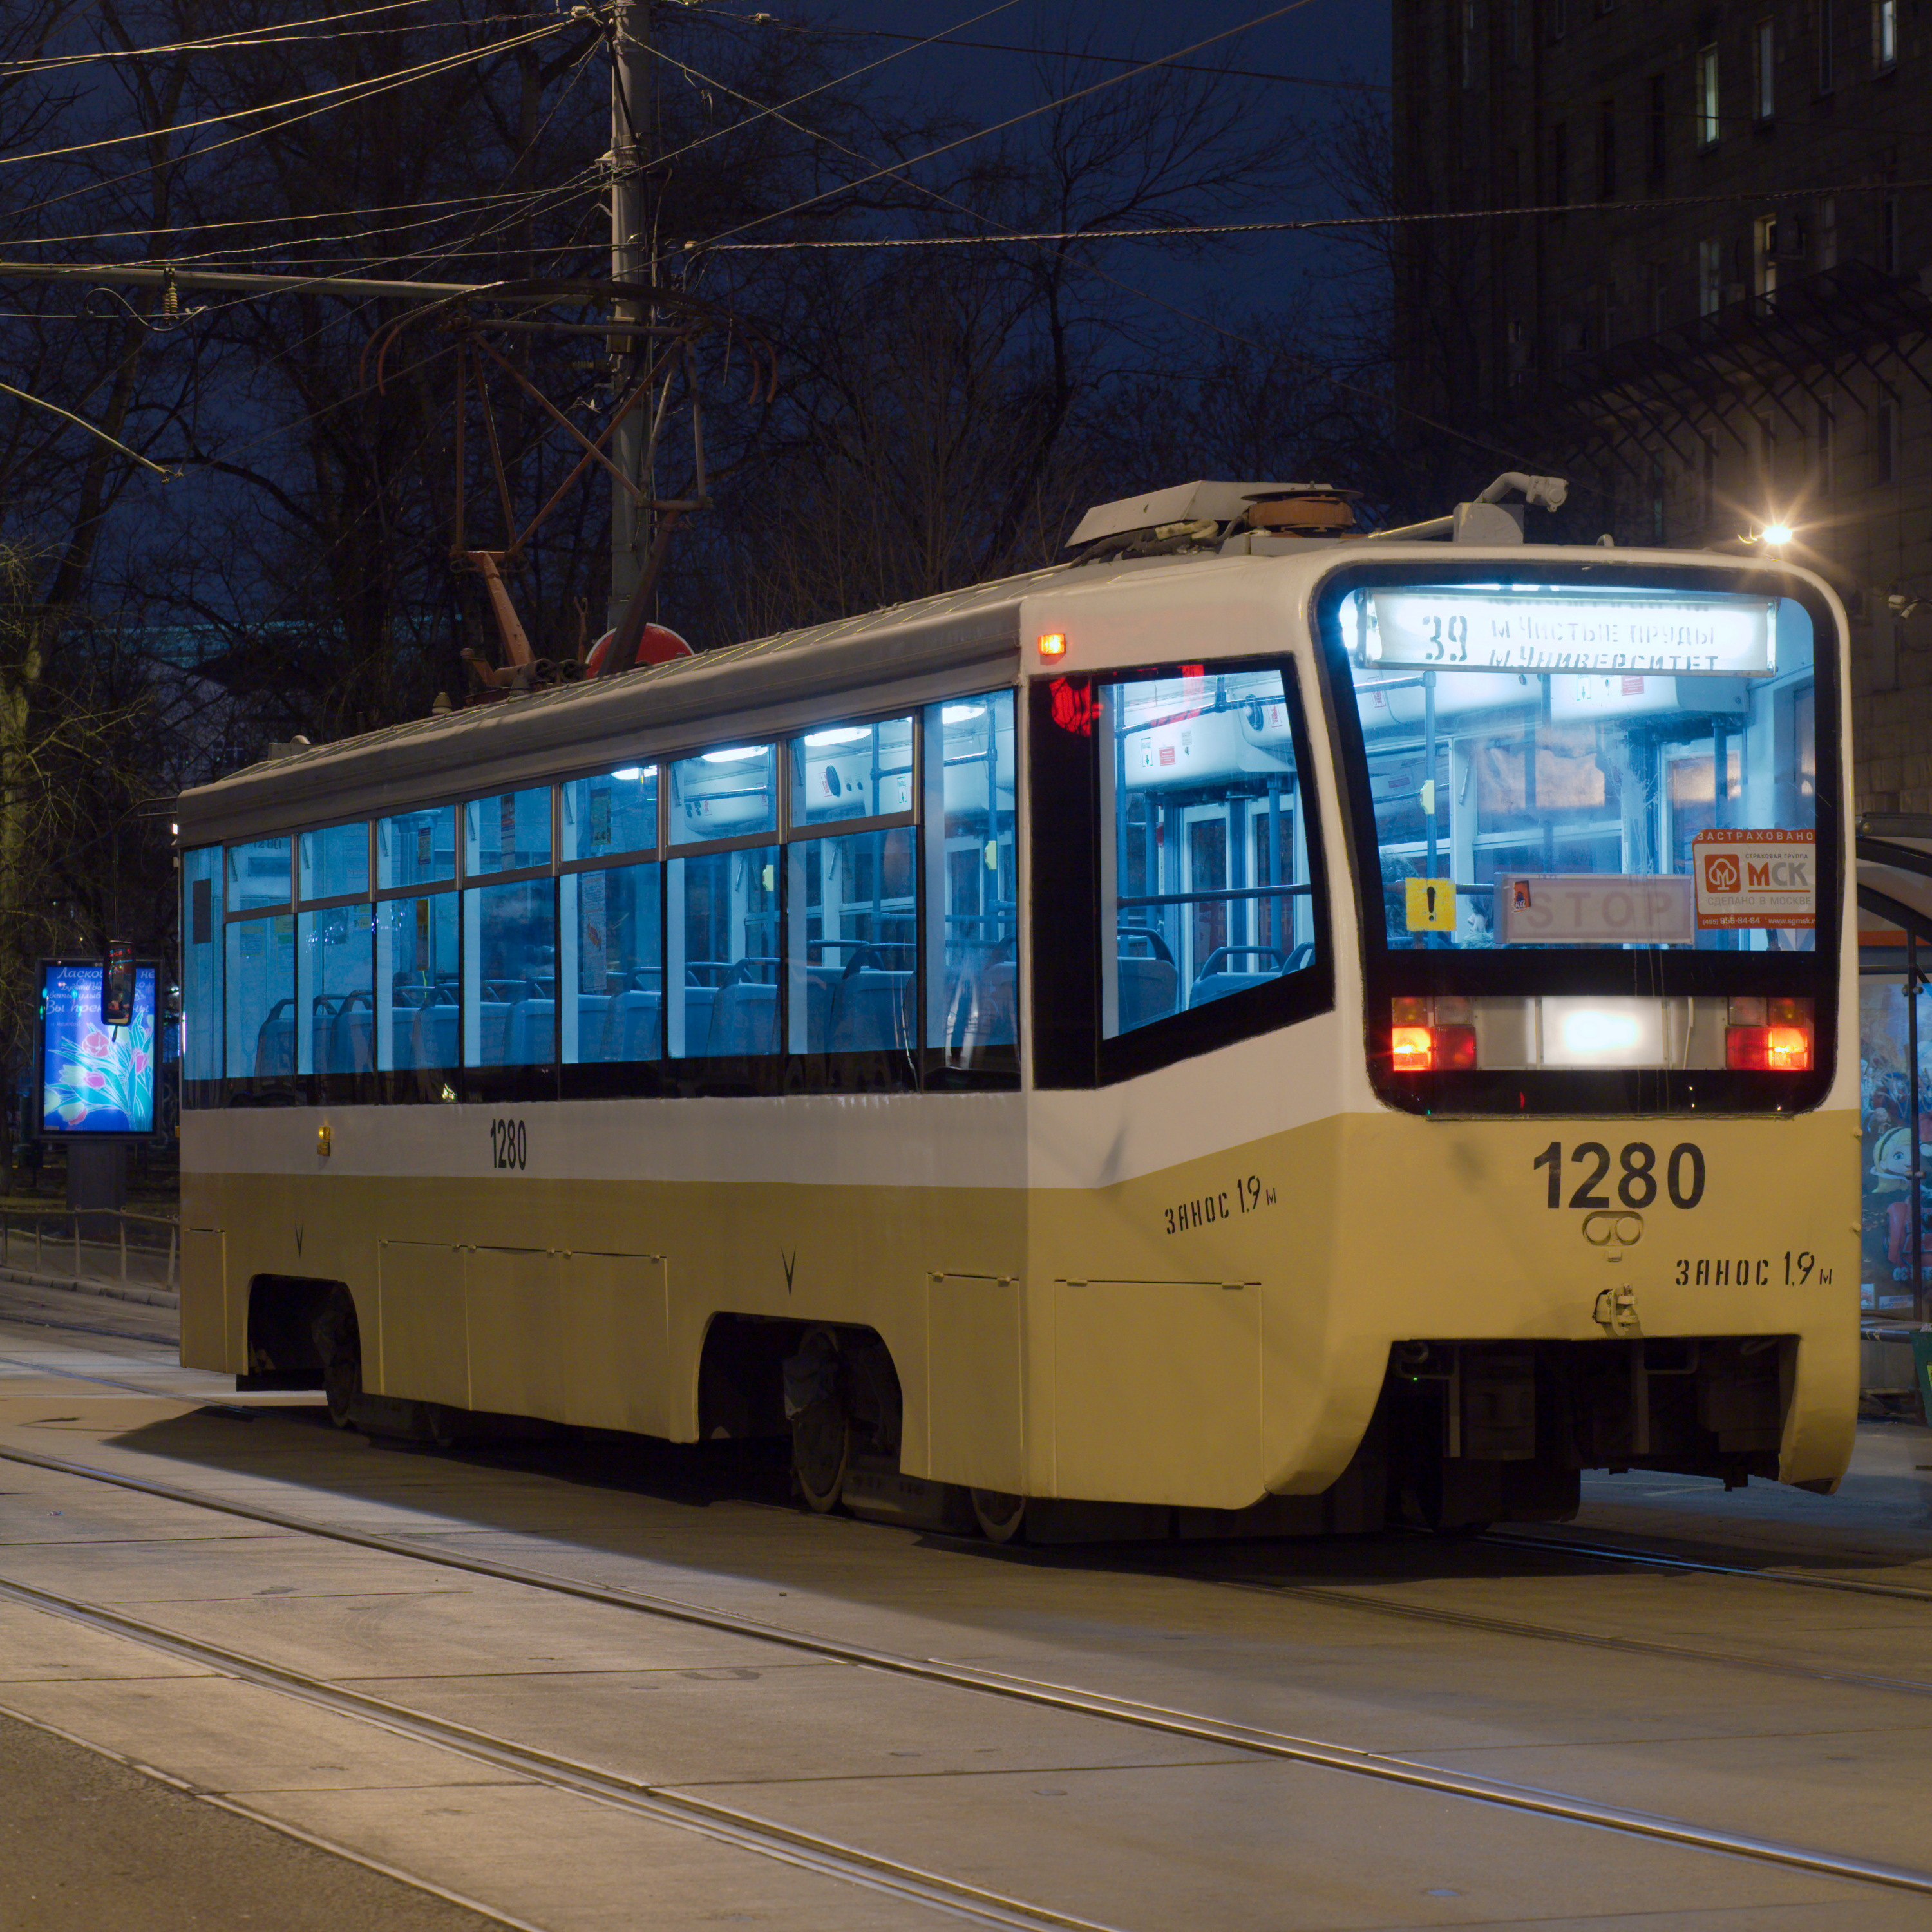 71-619 tram on 39 route at Sadovnicheskaya st. of Moscow at Feb 2014